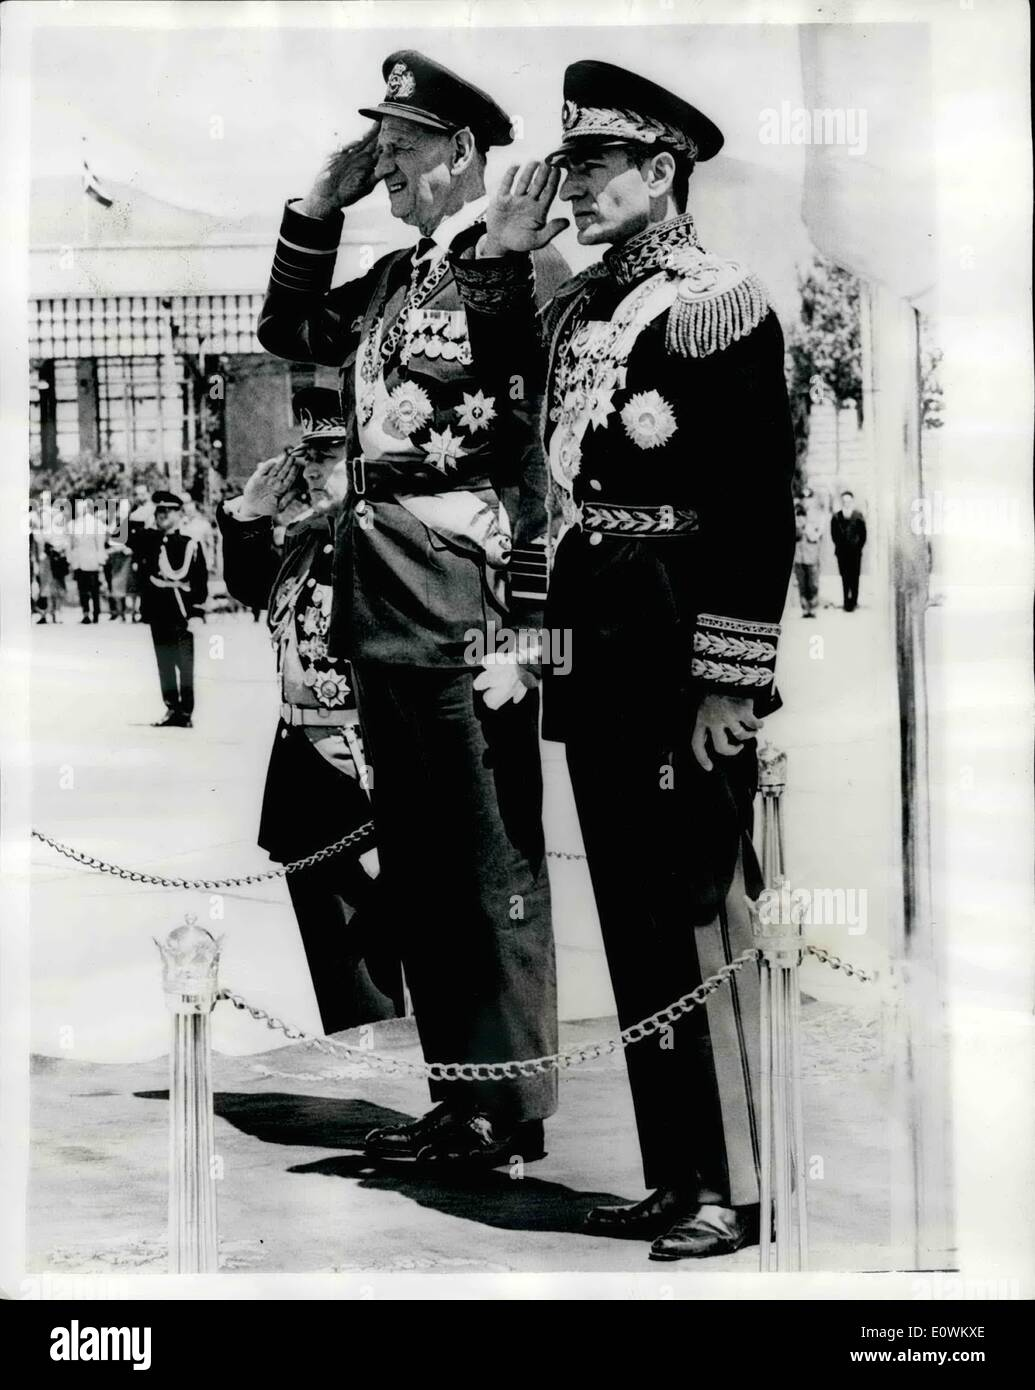 May 05, 1963 - Danish Royal family visit Iran.: The King and Queen of Denmark and their daughter princess Benedikte are on an official visit to Iran. They were welcomed on their arrival at Teheran by the Shahansa and Empress. Photo shows King Frederick (left) and the Shah salute the guard of Honour at Teheran Airport - Stock Image